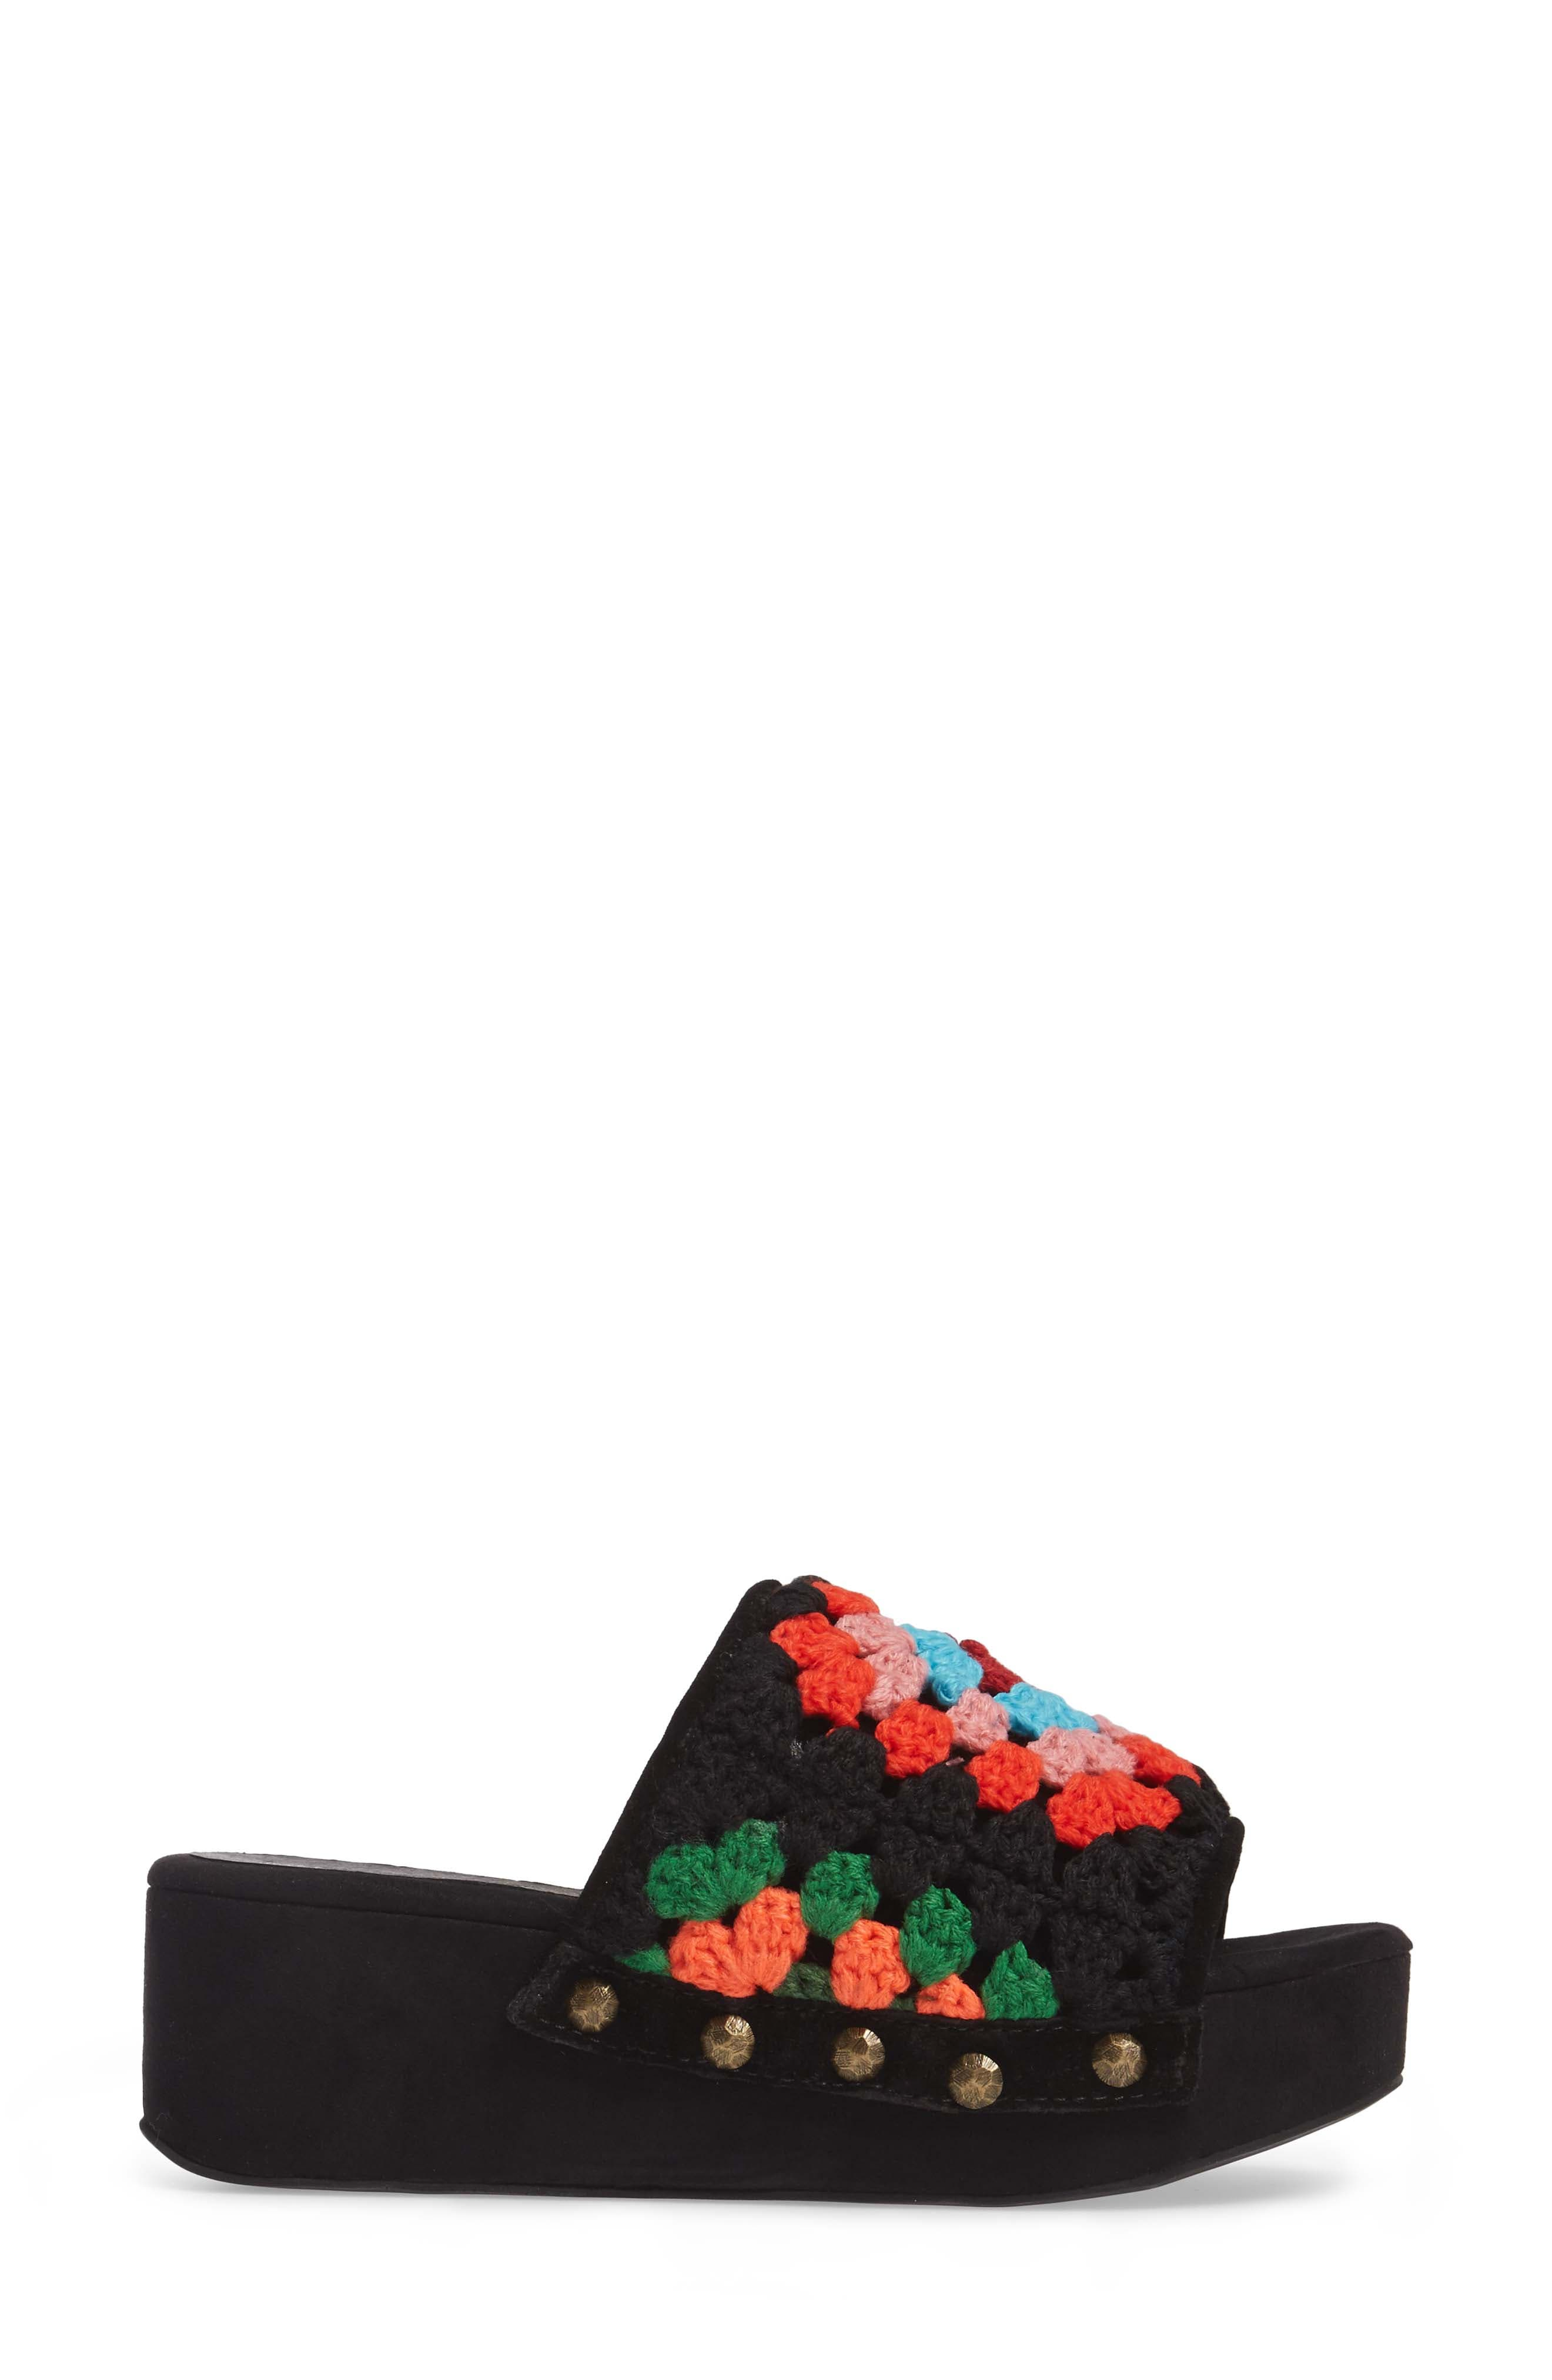 Nonna Crocheted Platform Slide Sandal,                             Alternate thumbnail 3, color,                             Black Suede Multi